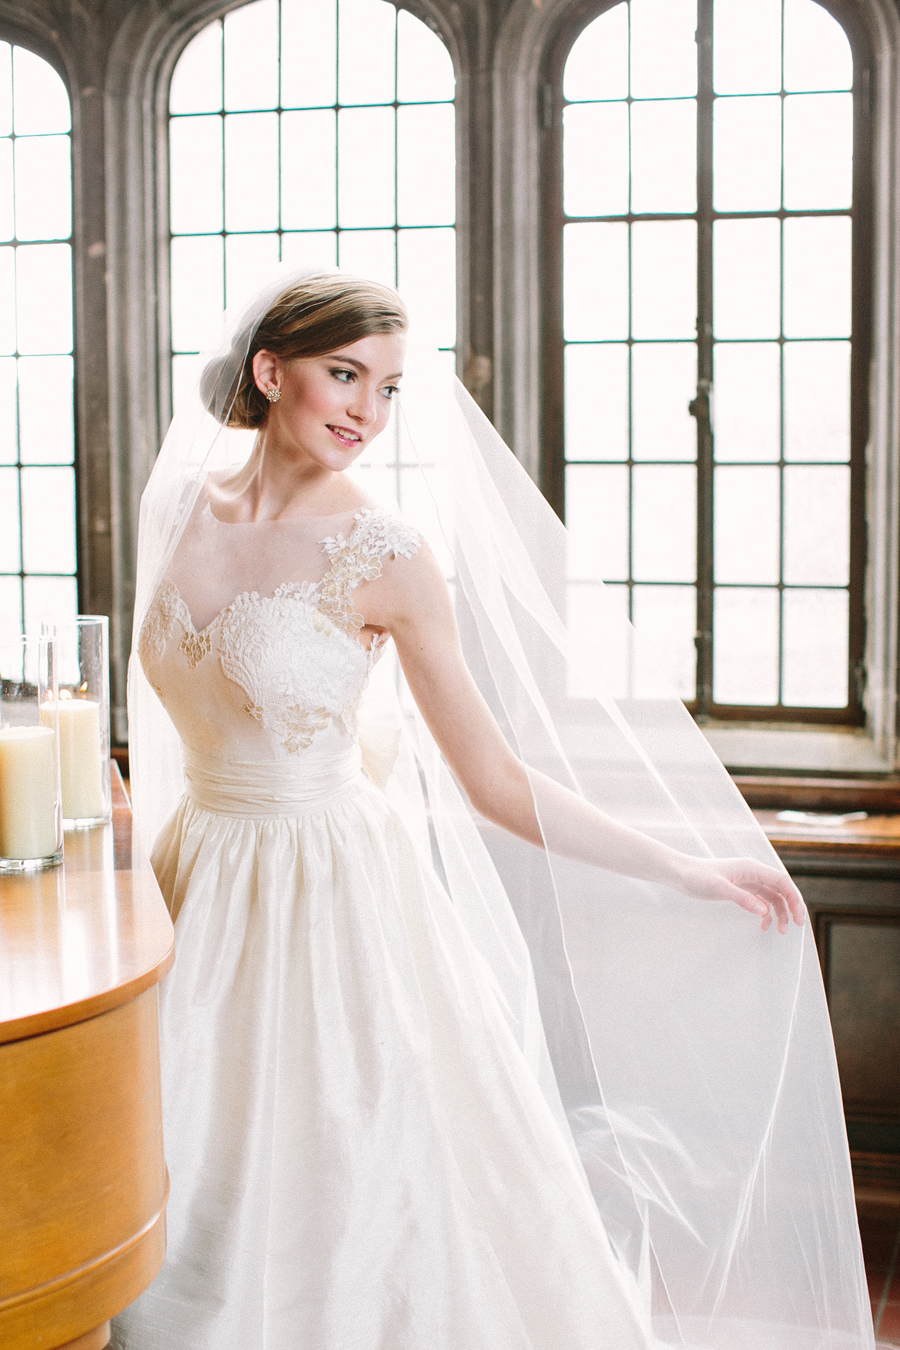 Old Hollywood Style Wedding Gown - Elizabeth Anne Designs: The ...